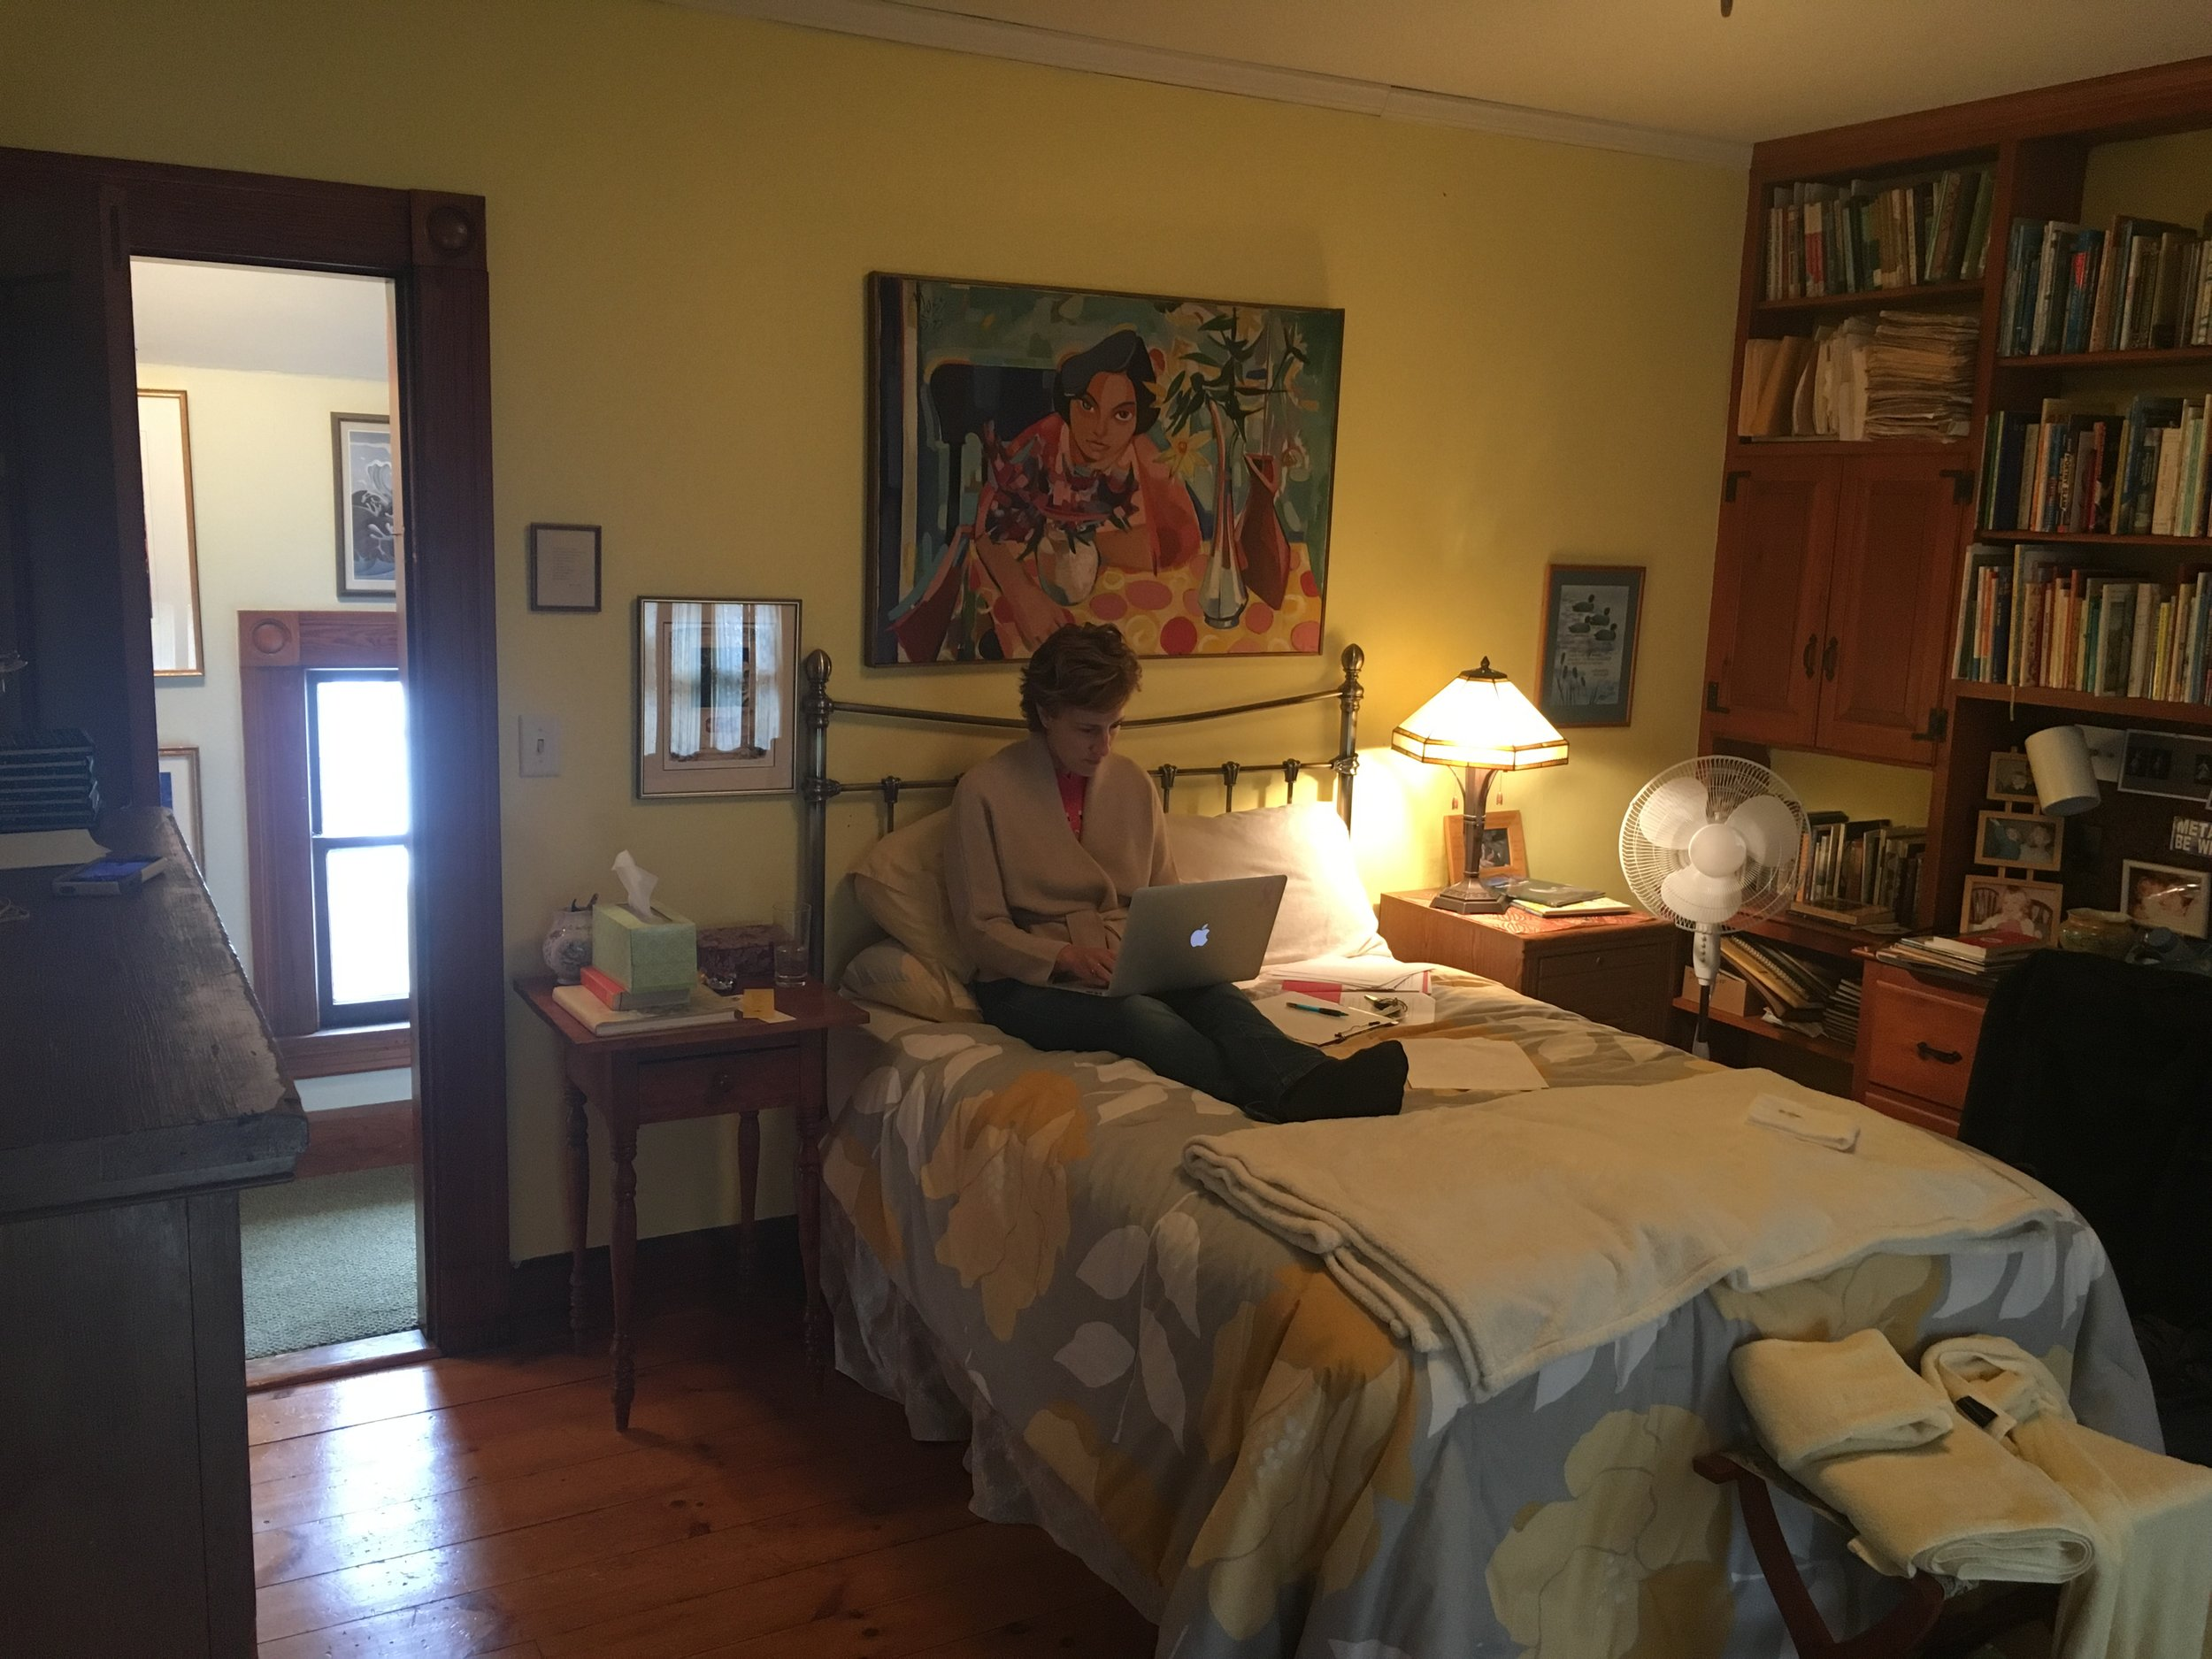 Revising a new manuscript in the Emily Dickinson Room at Phoenix Farm